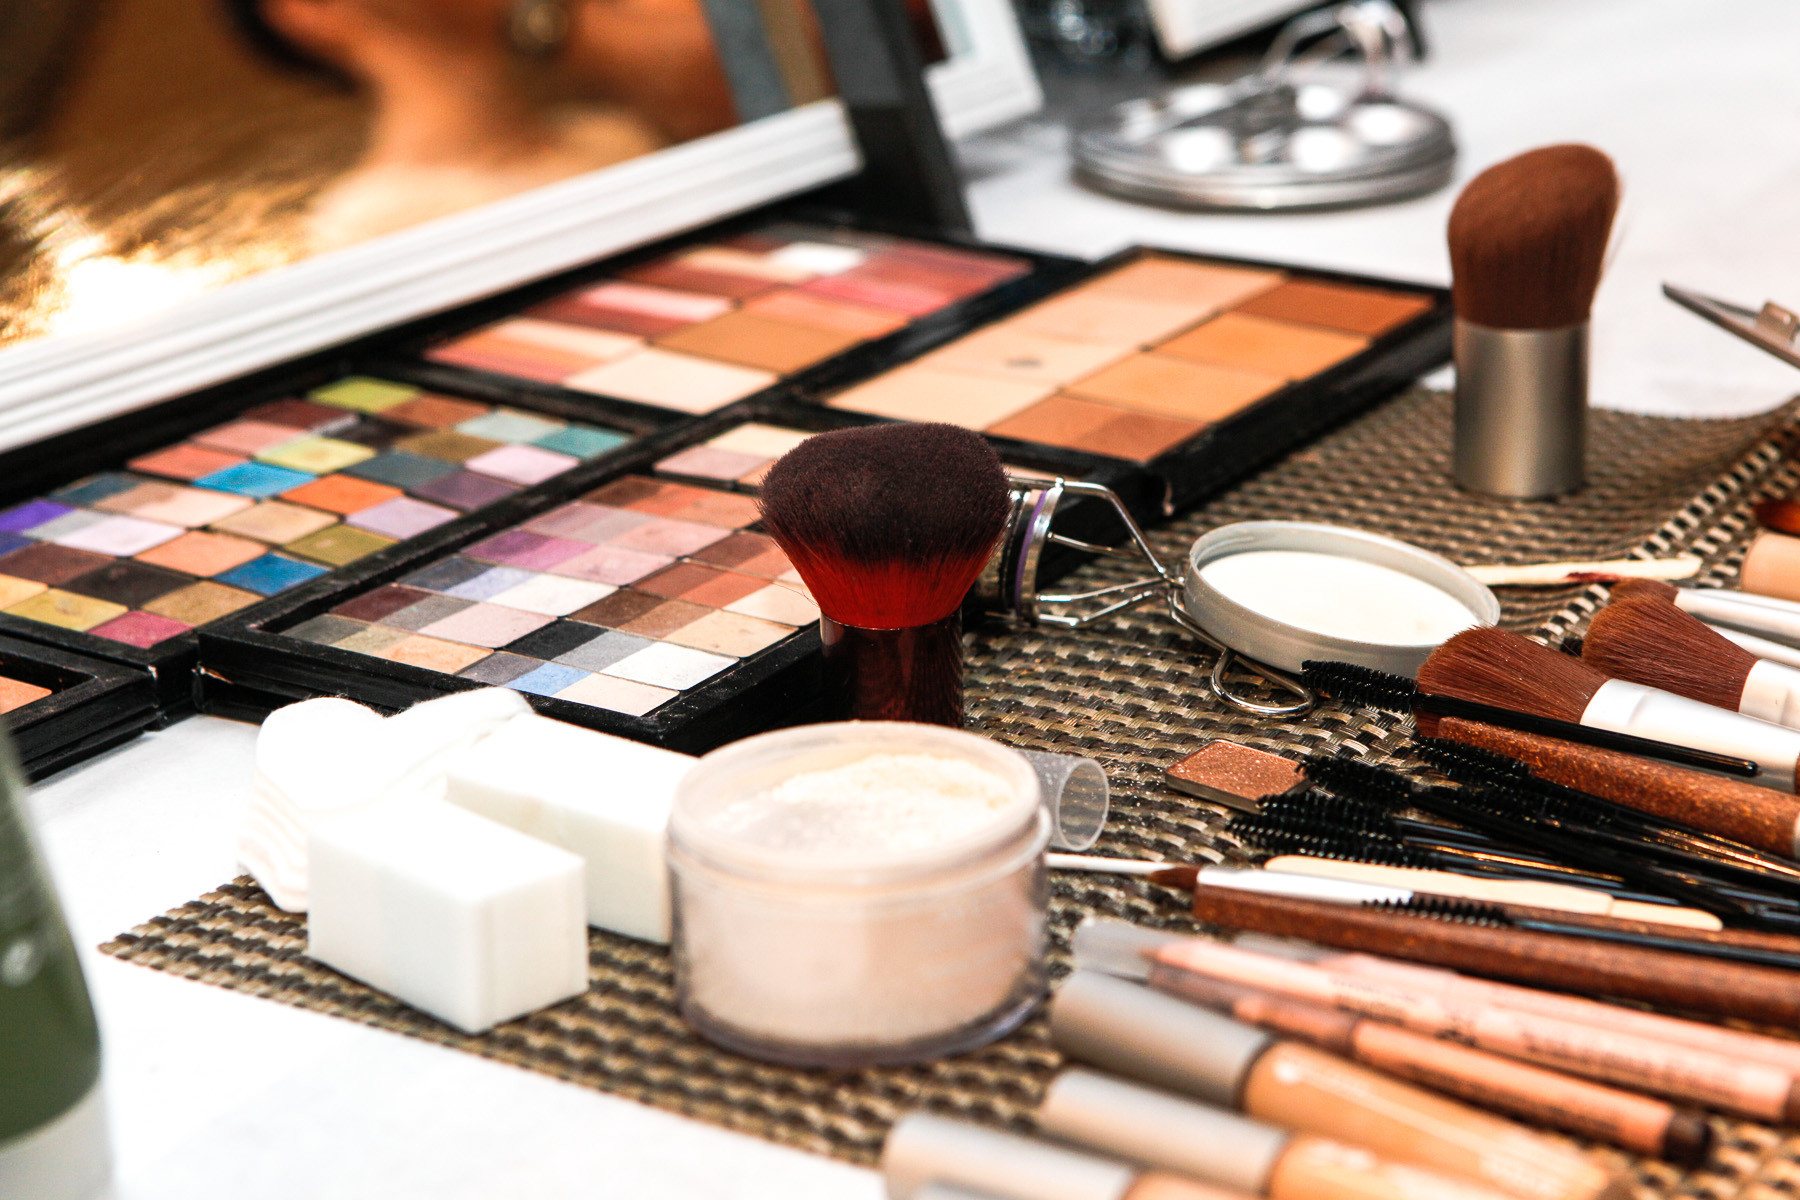 Some Great Advice on Saving Money When Choosing Makeup and Ways to Locate Cheap Cosmetics